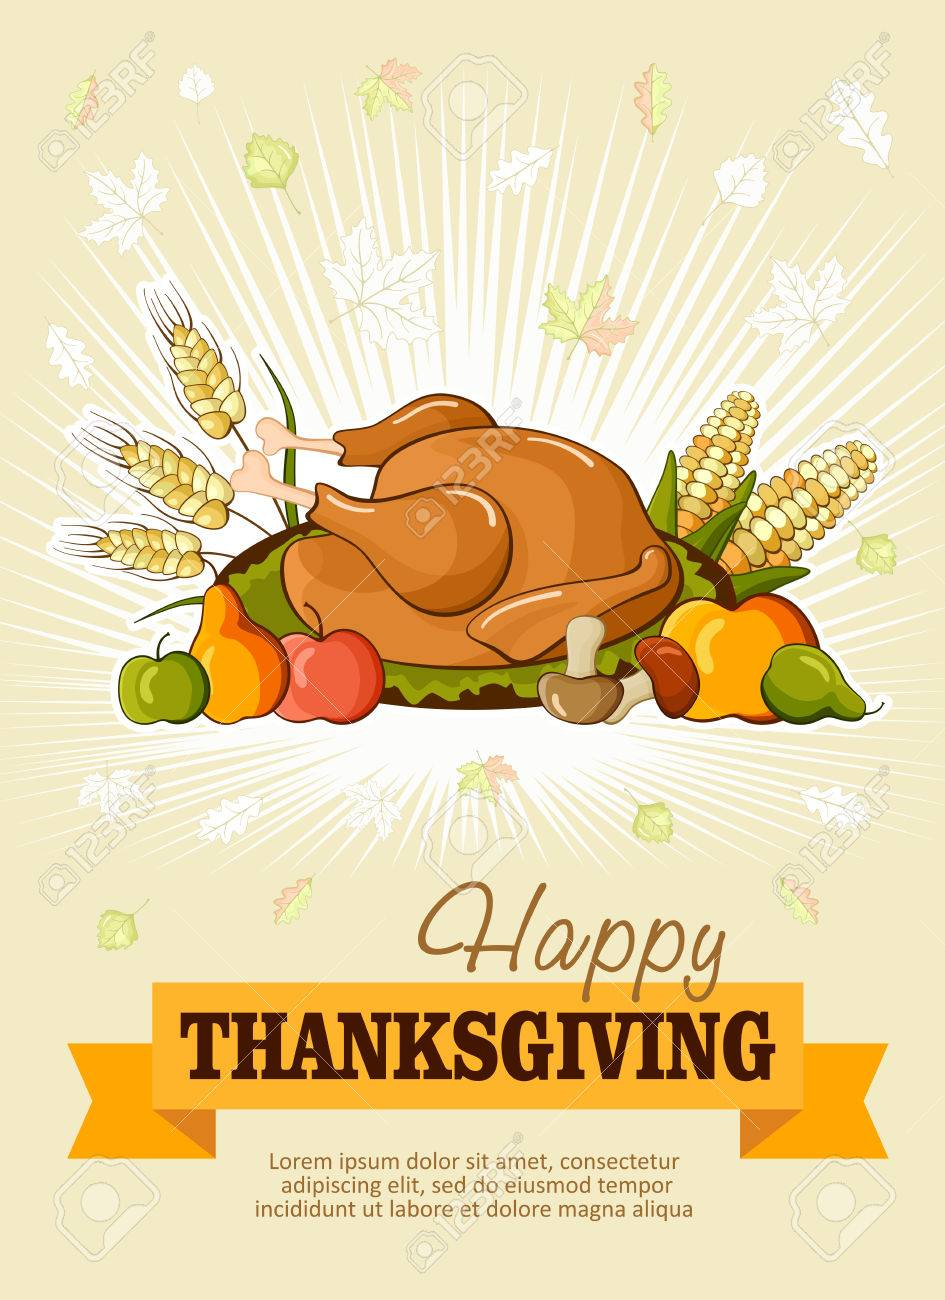 Happy Thanksgiving Day Celebration Flyer, Banner Or Poster With ...